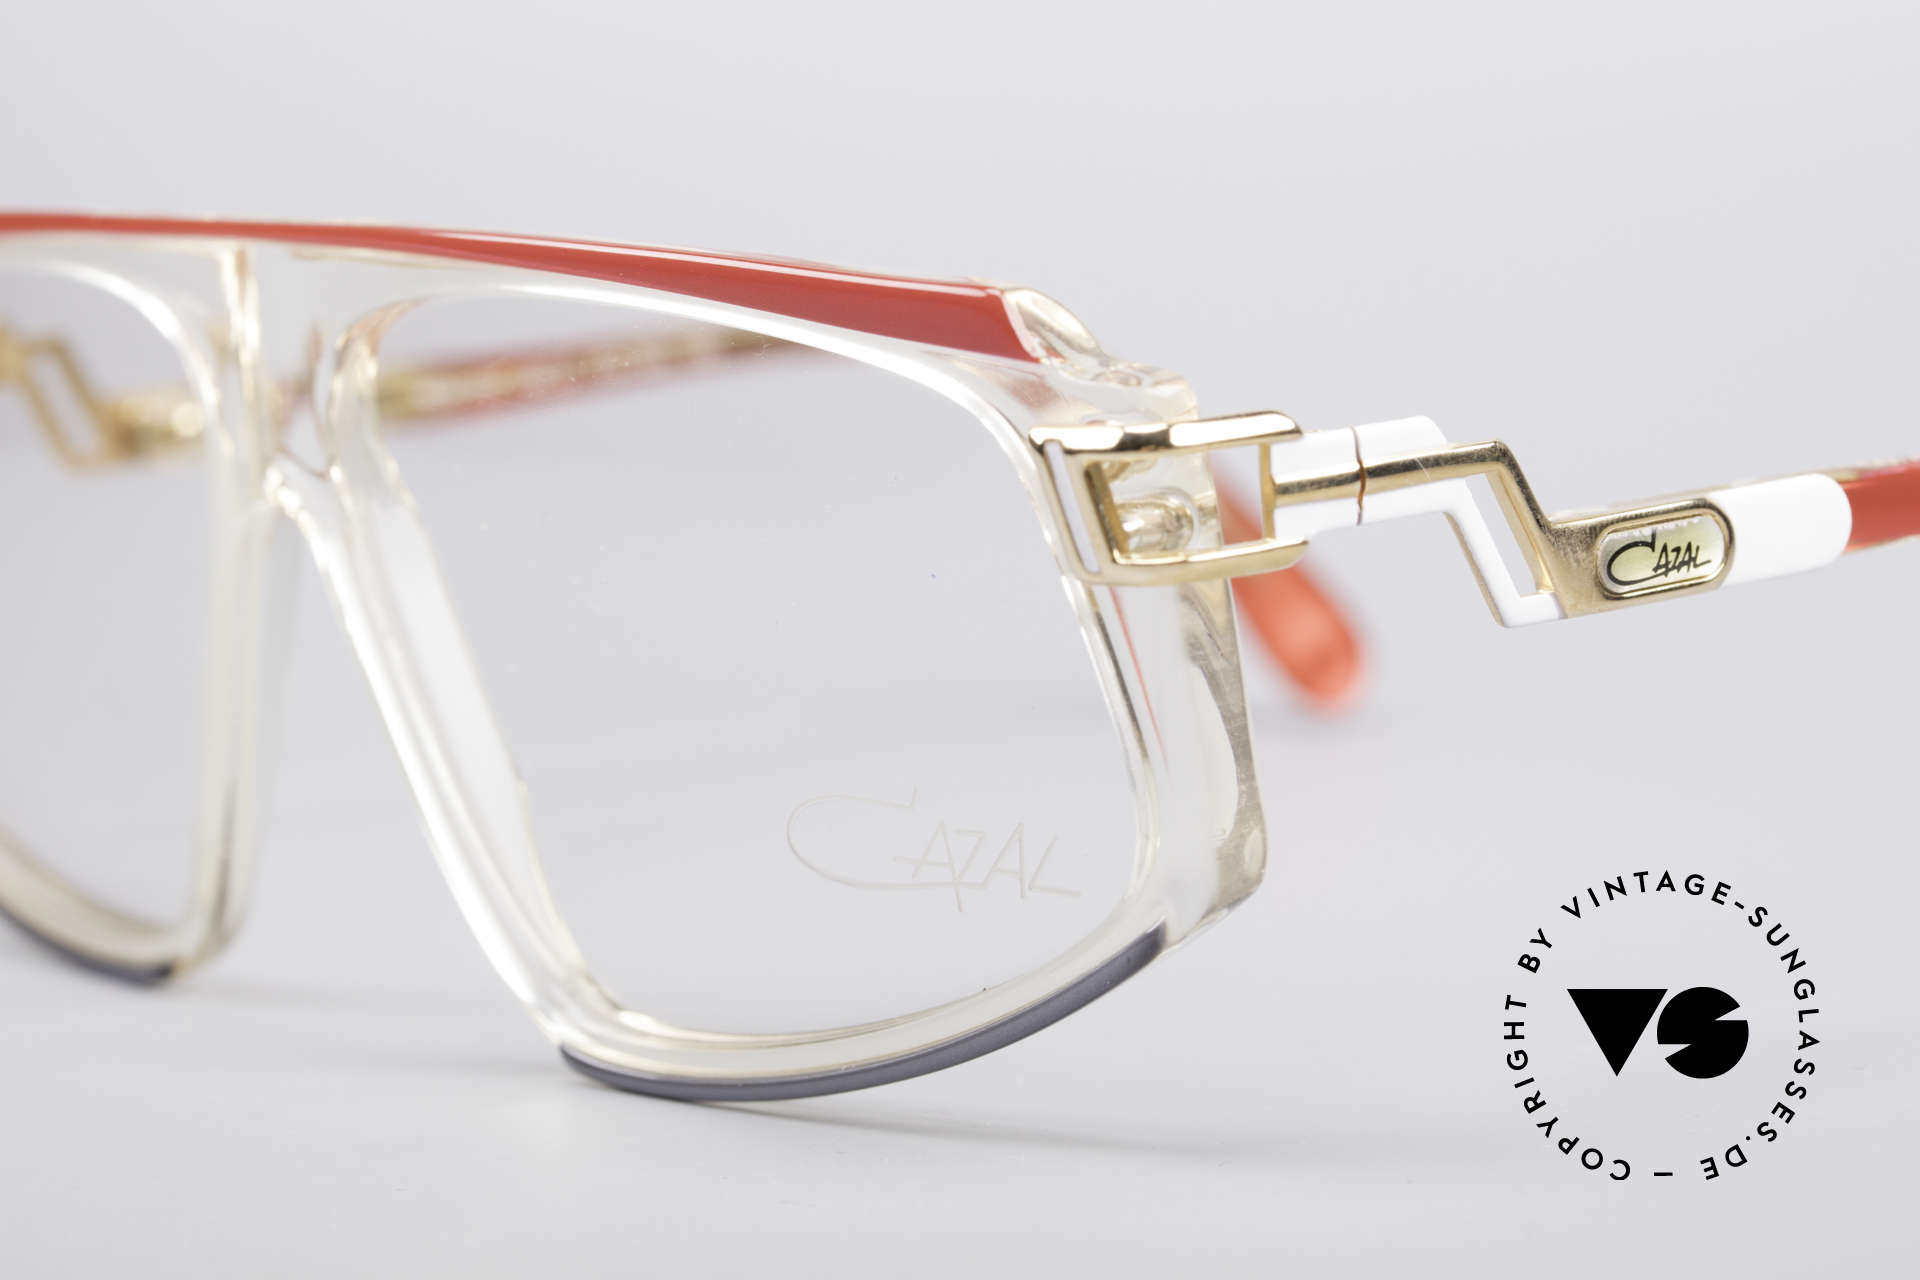 Cazal 170 True Vintage No Retro Glasses, new old stock (like all our 80's CAZAL eyewear), Made for Women